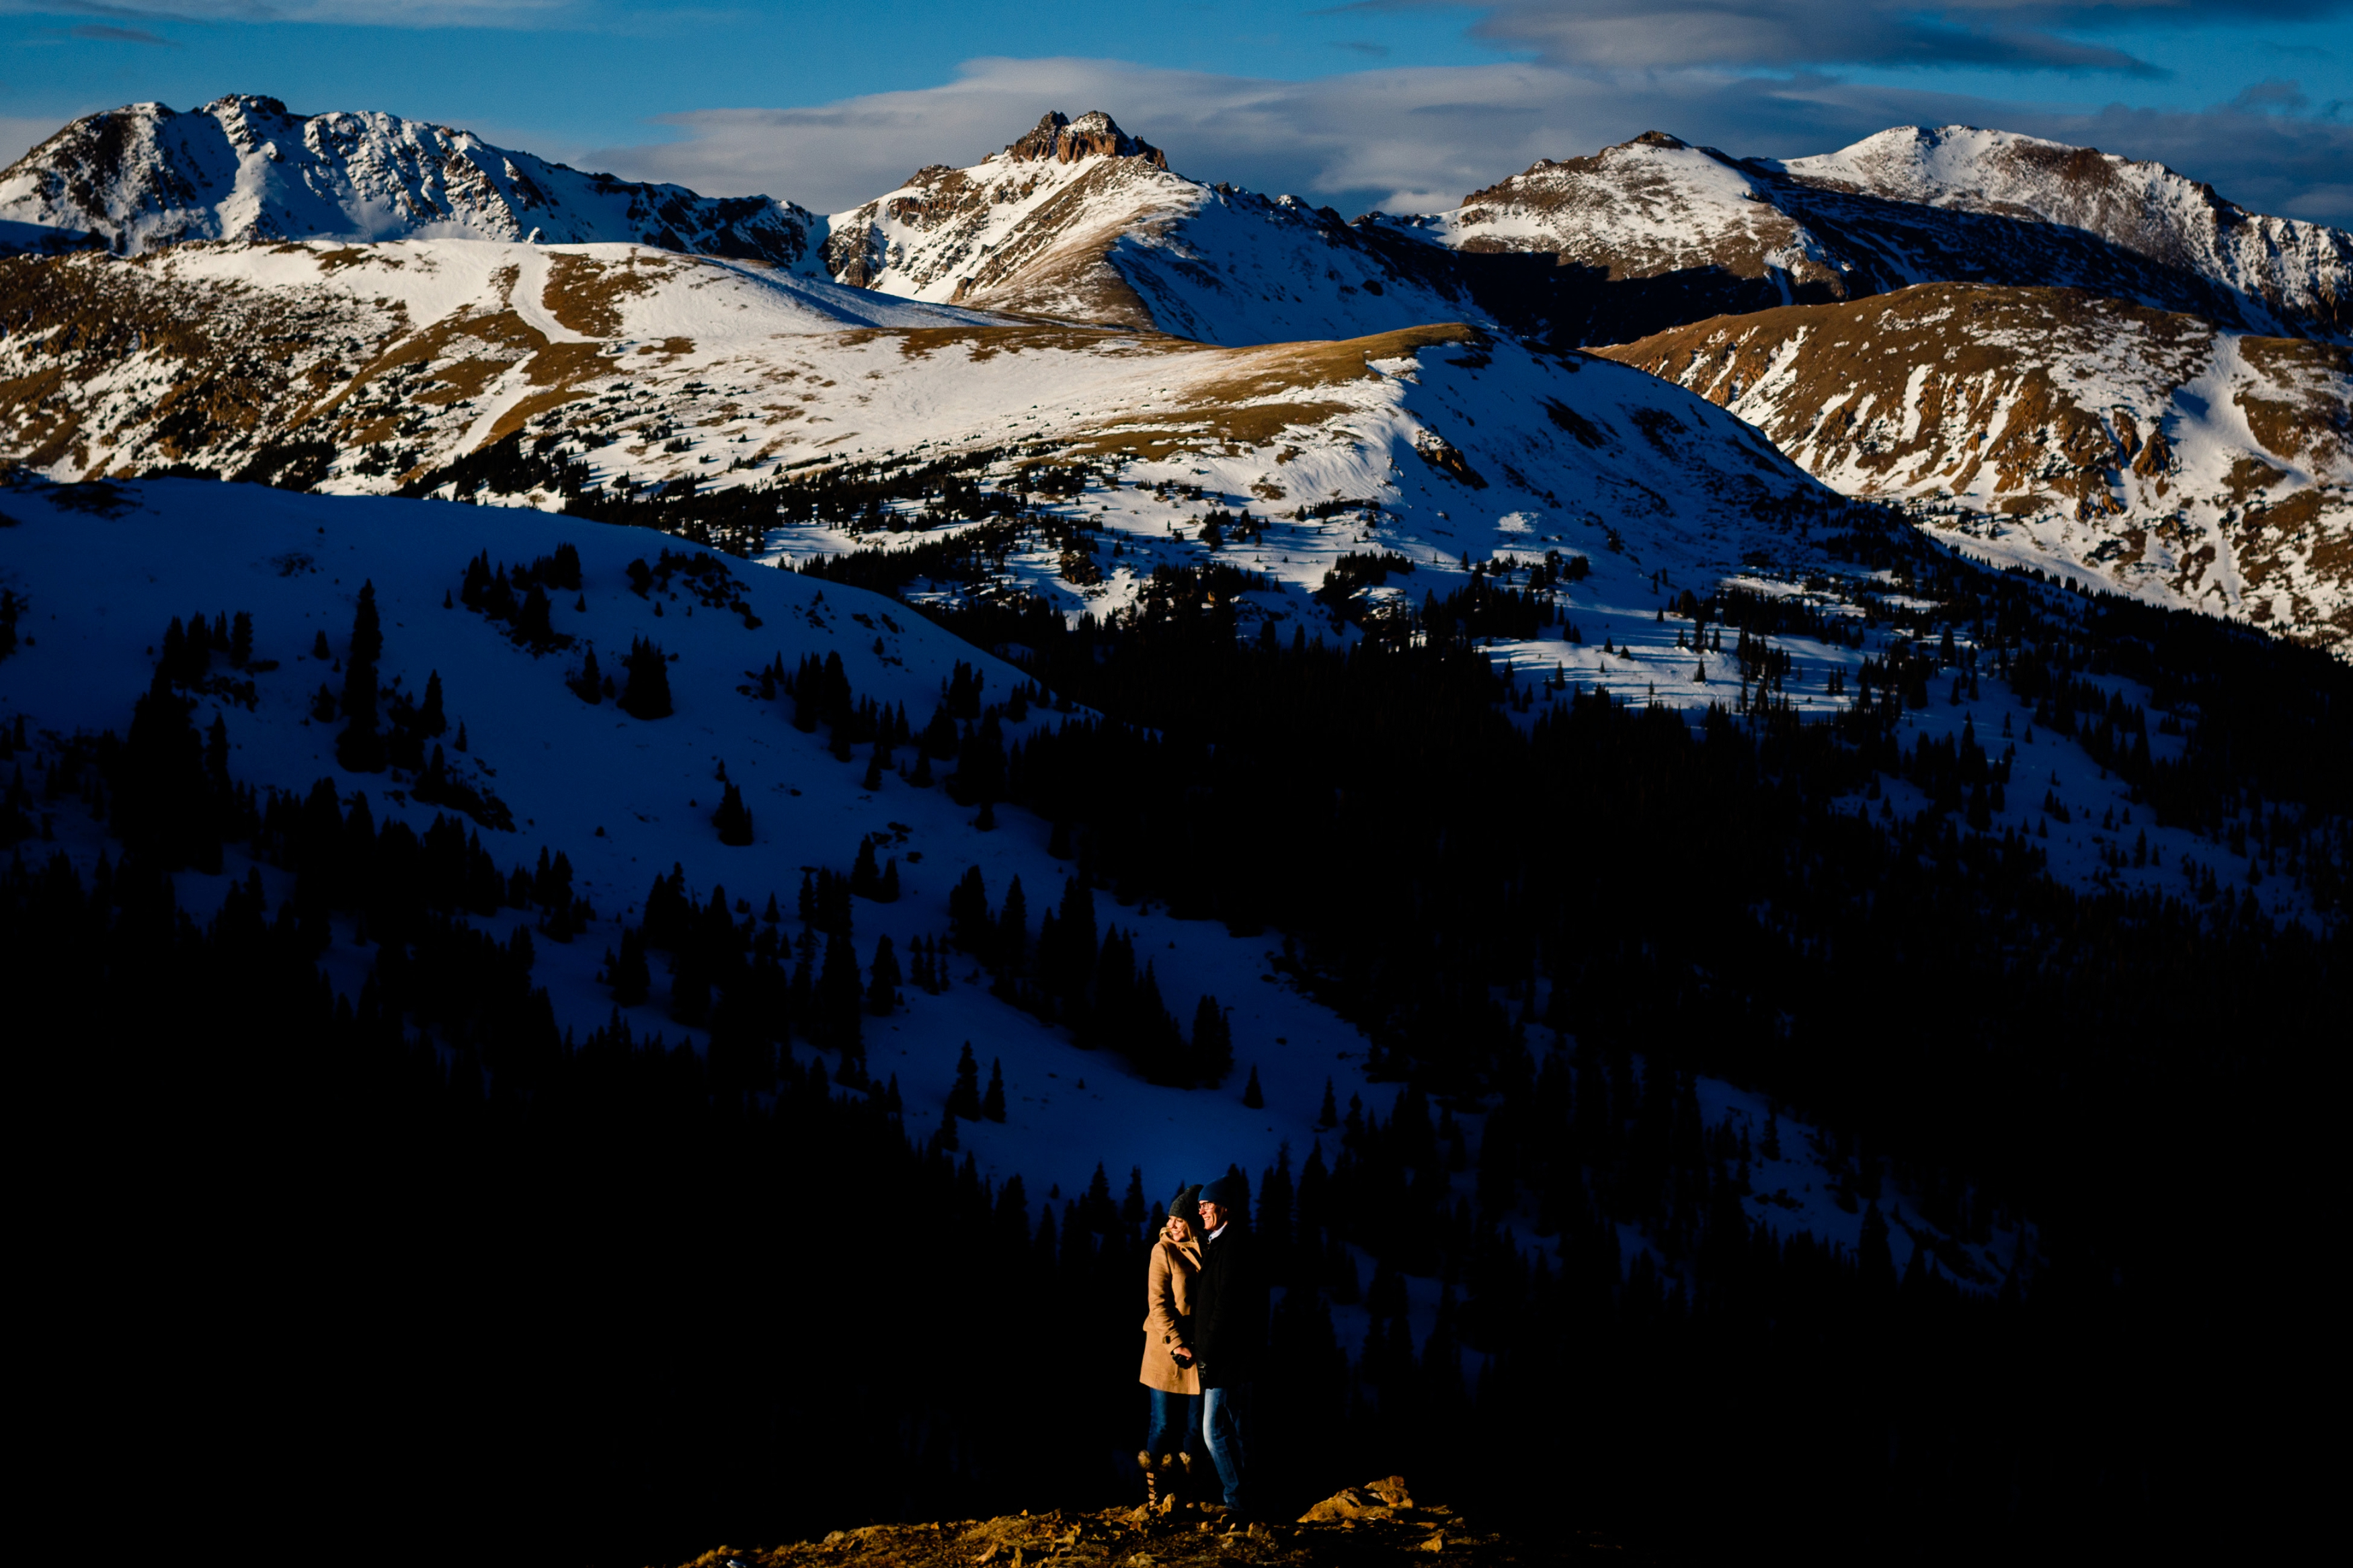 A beautifully sunlit engagement photo on top of Loveland Pass near Keystone, CO.